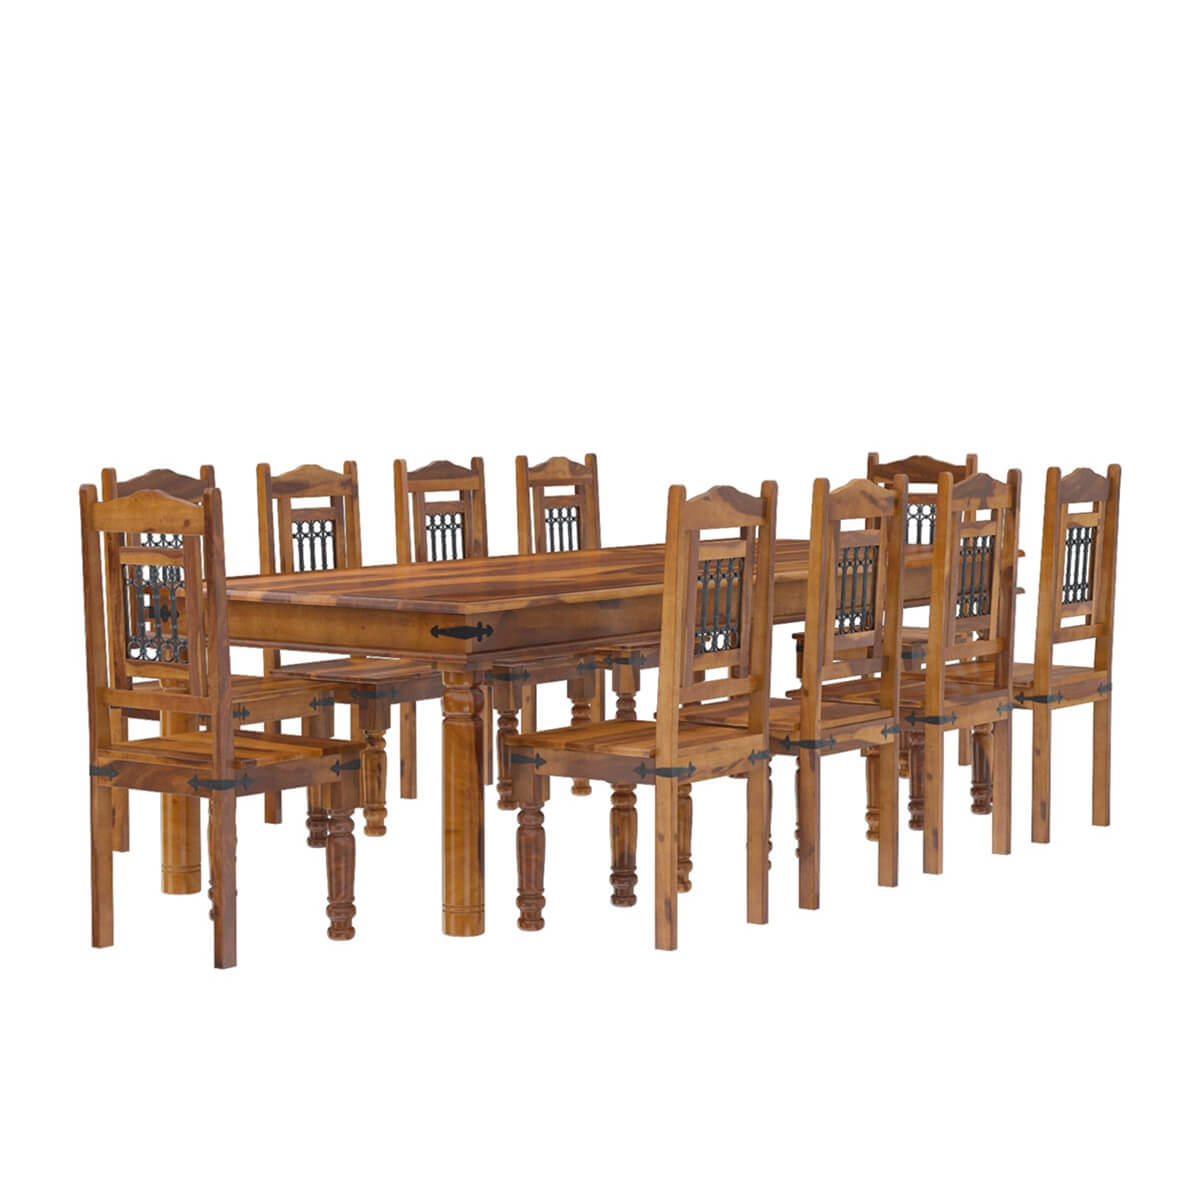 Rustic Dining Room Table Set: San Francisco Rustic Furniture Large Dining Table With 10